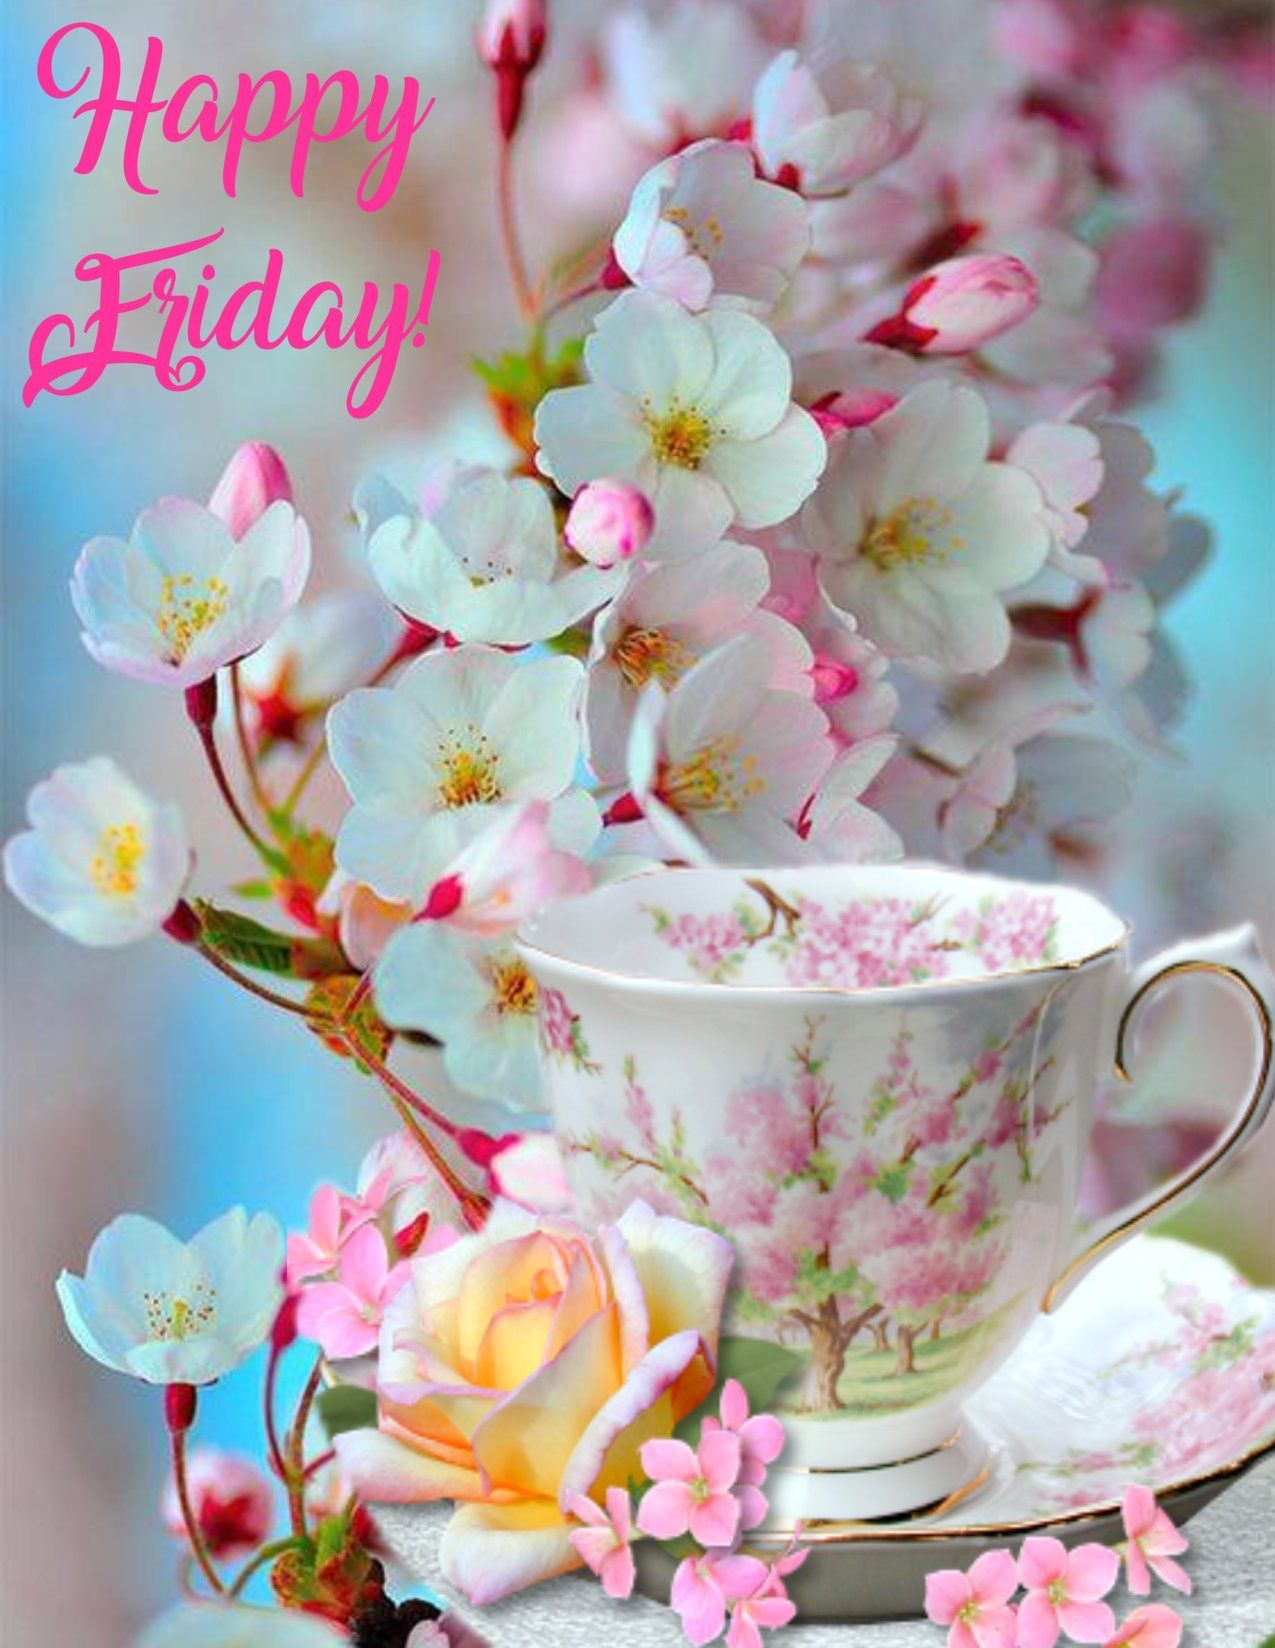 Happy Friday Greetings More Pinterest Happy Friday